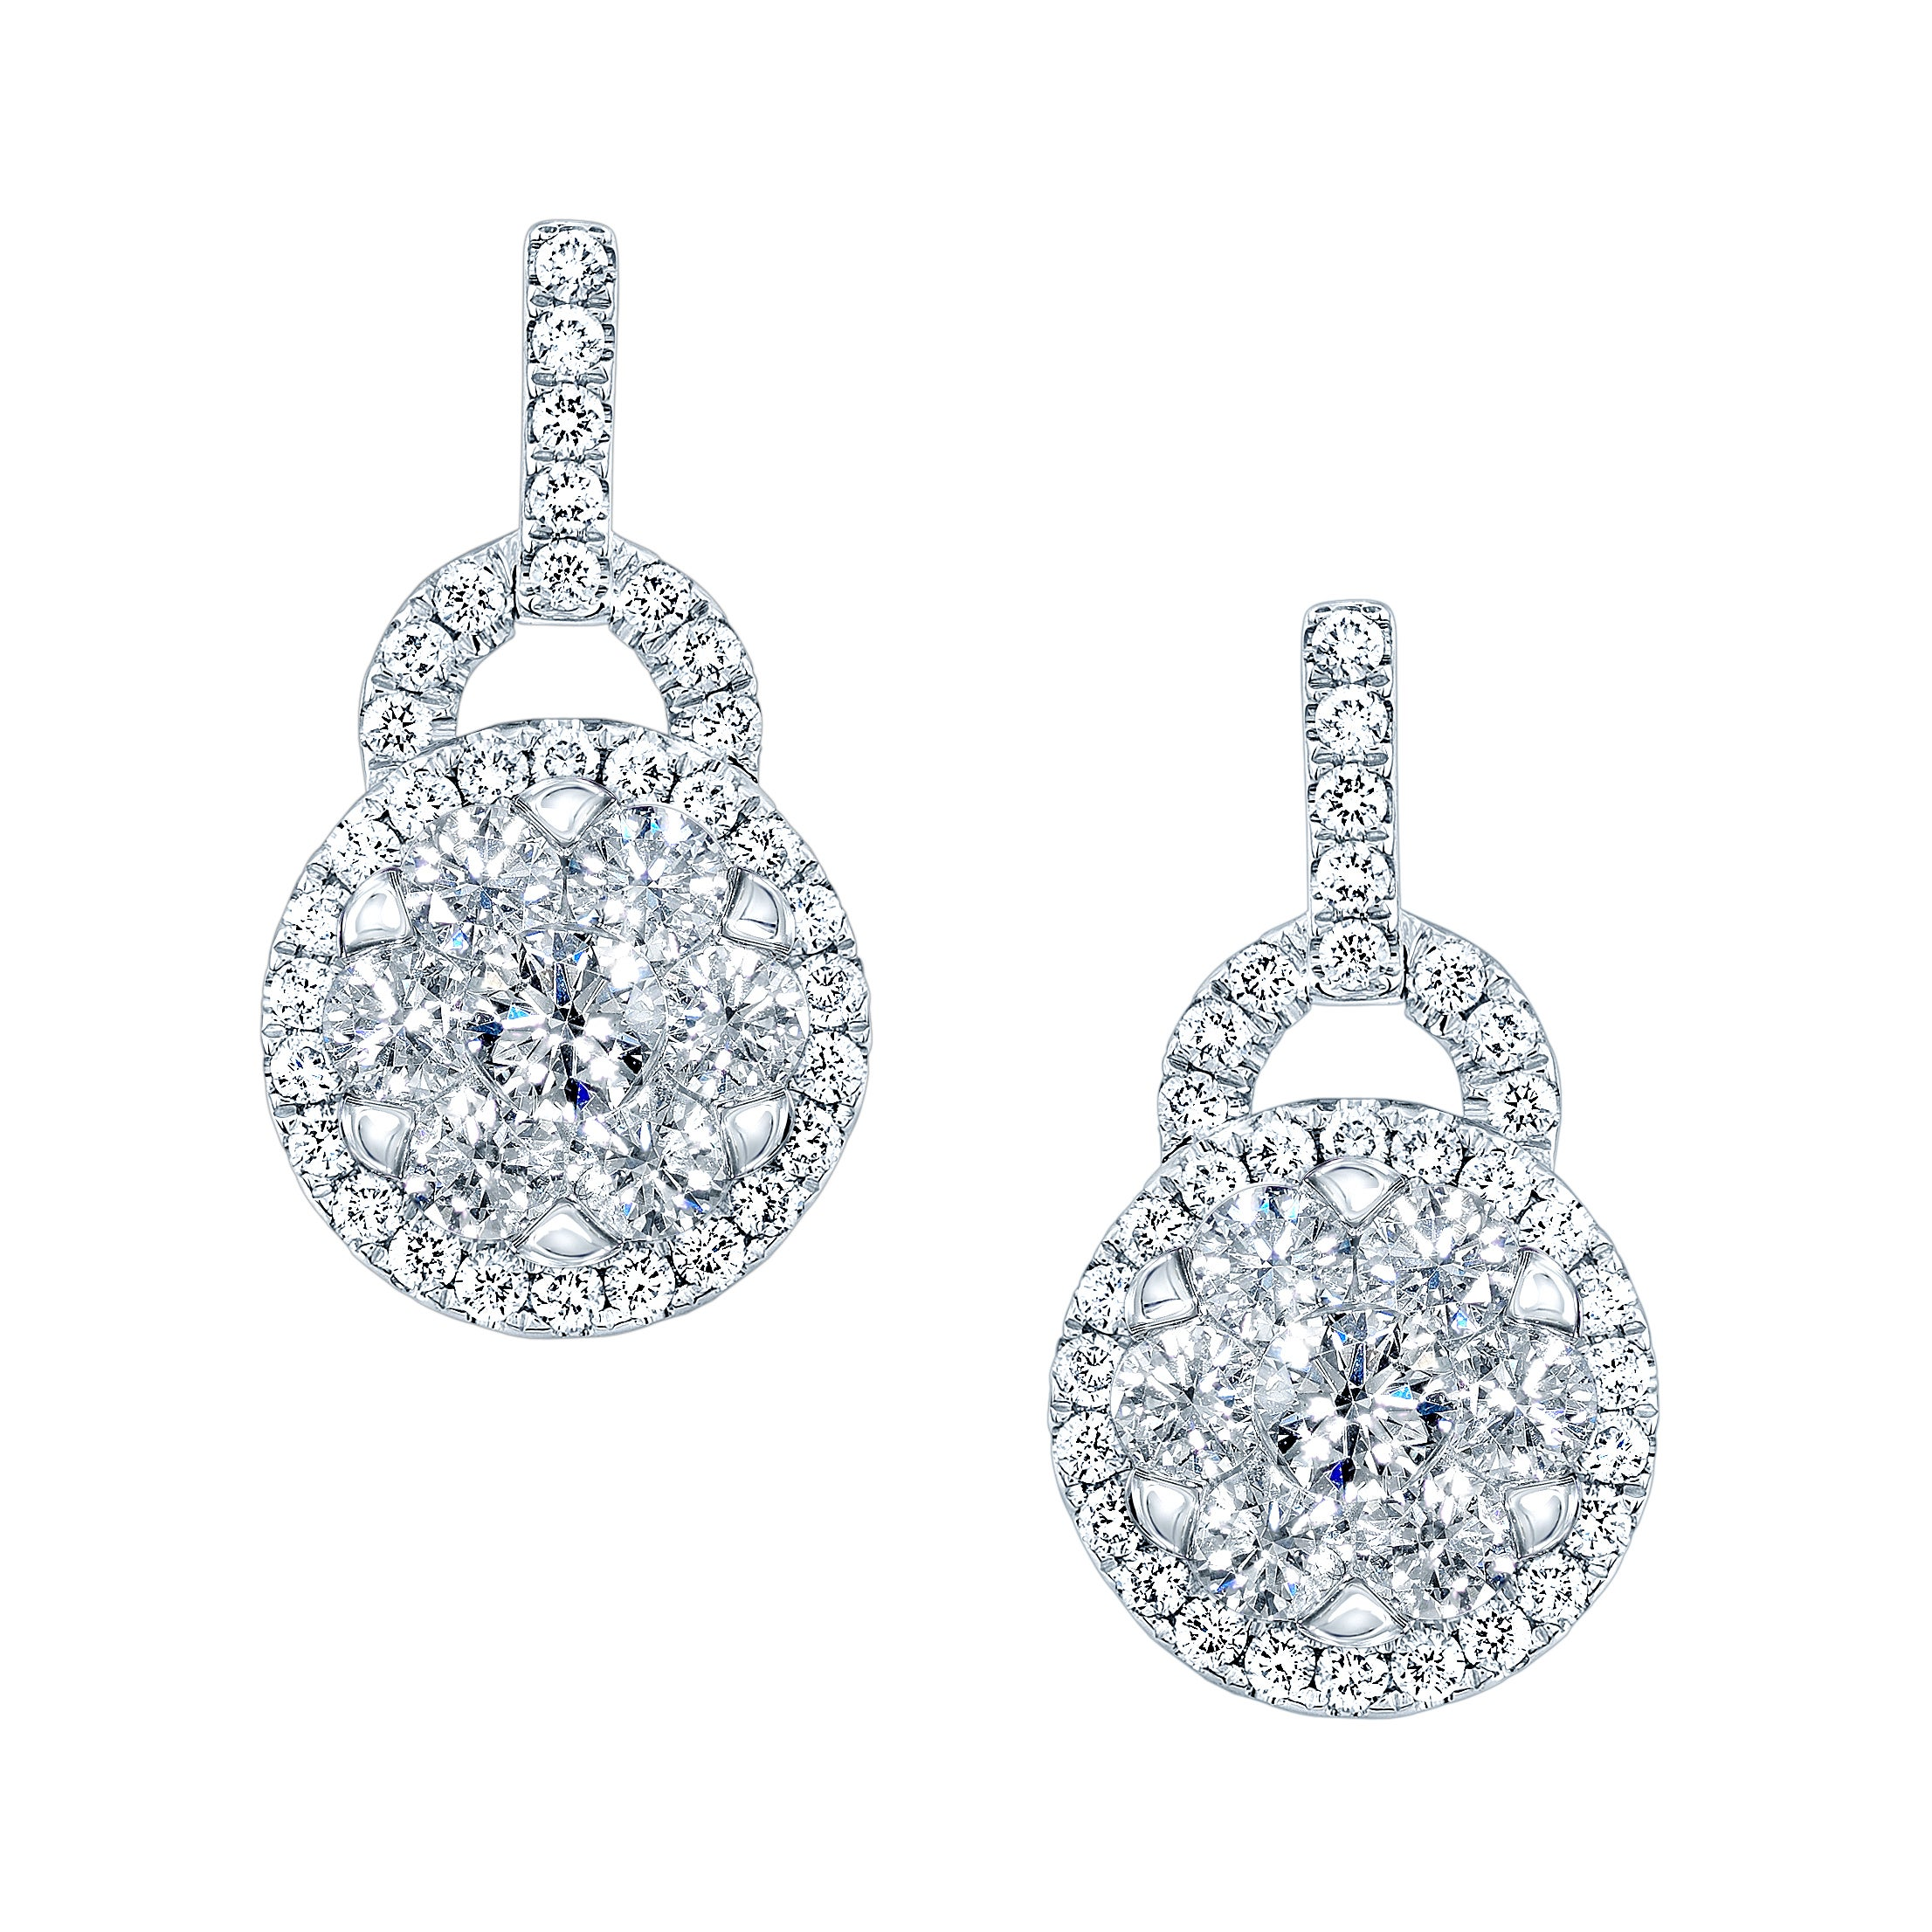 14k White Gold 1 2ct Tdw Diamond Stud Drop Earrings On Free Shipping Today 10814113